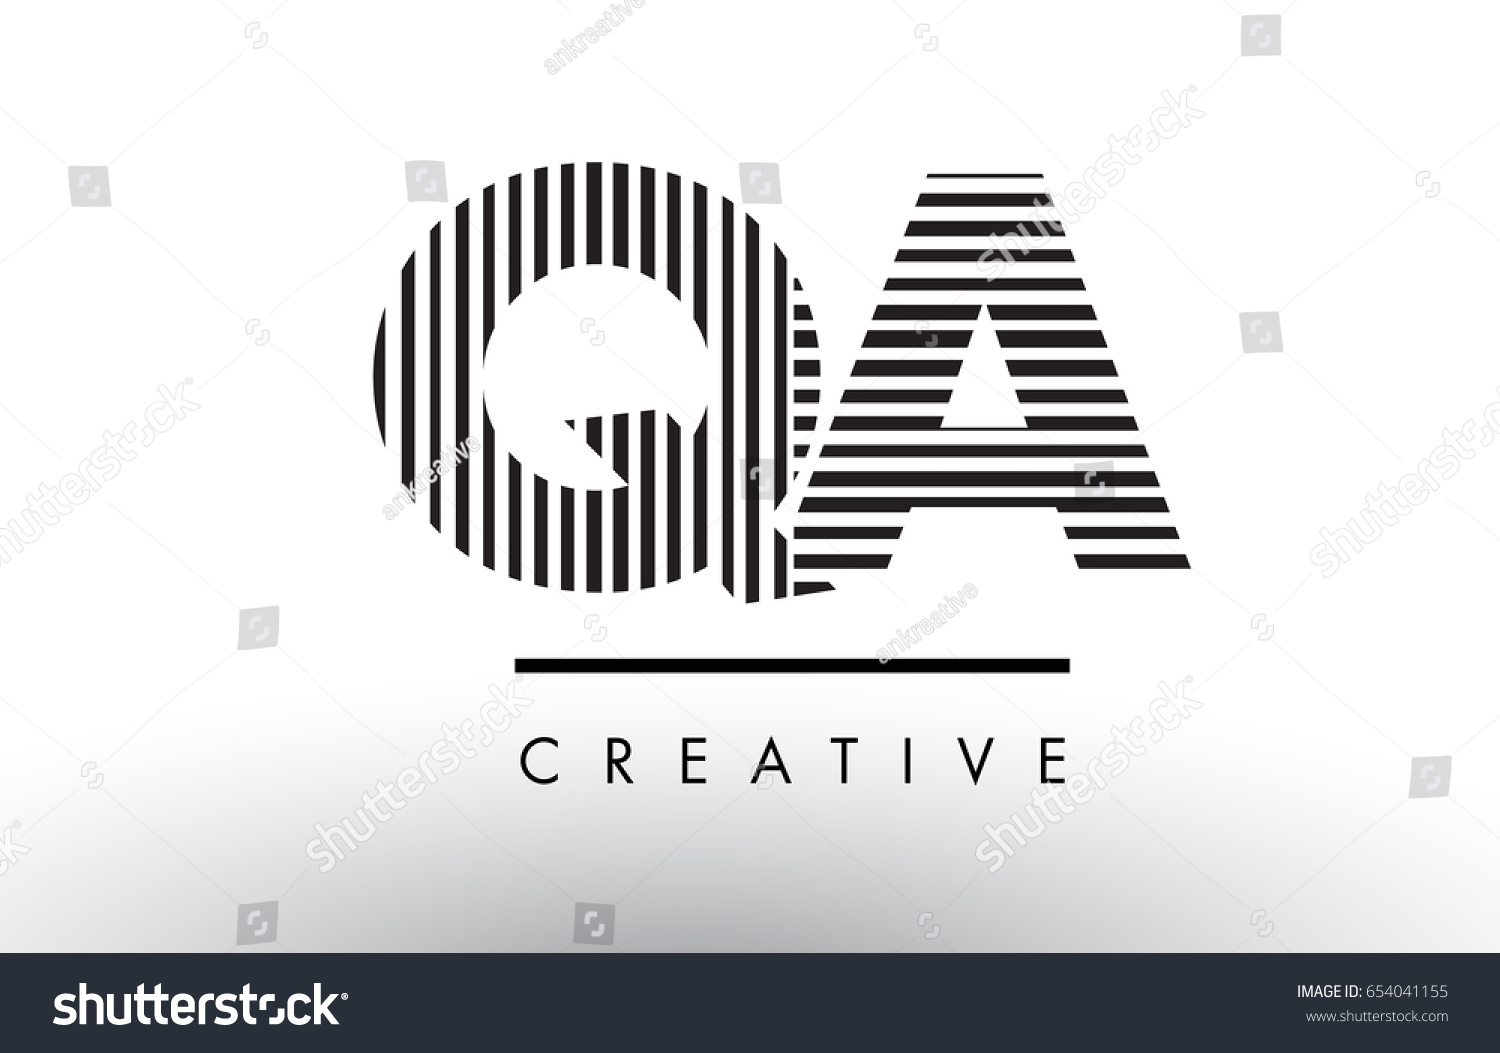 QA Q A Black and White Letter Logo Design with Vertical and Horizontal  Lines.